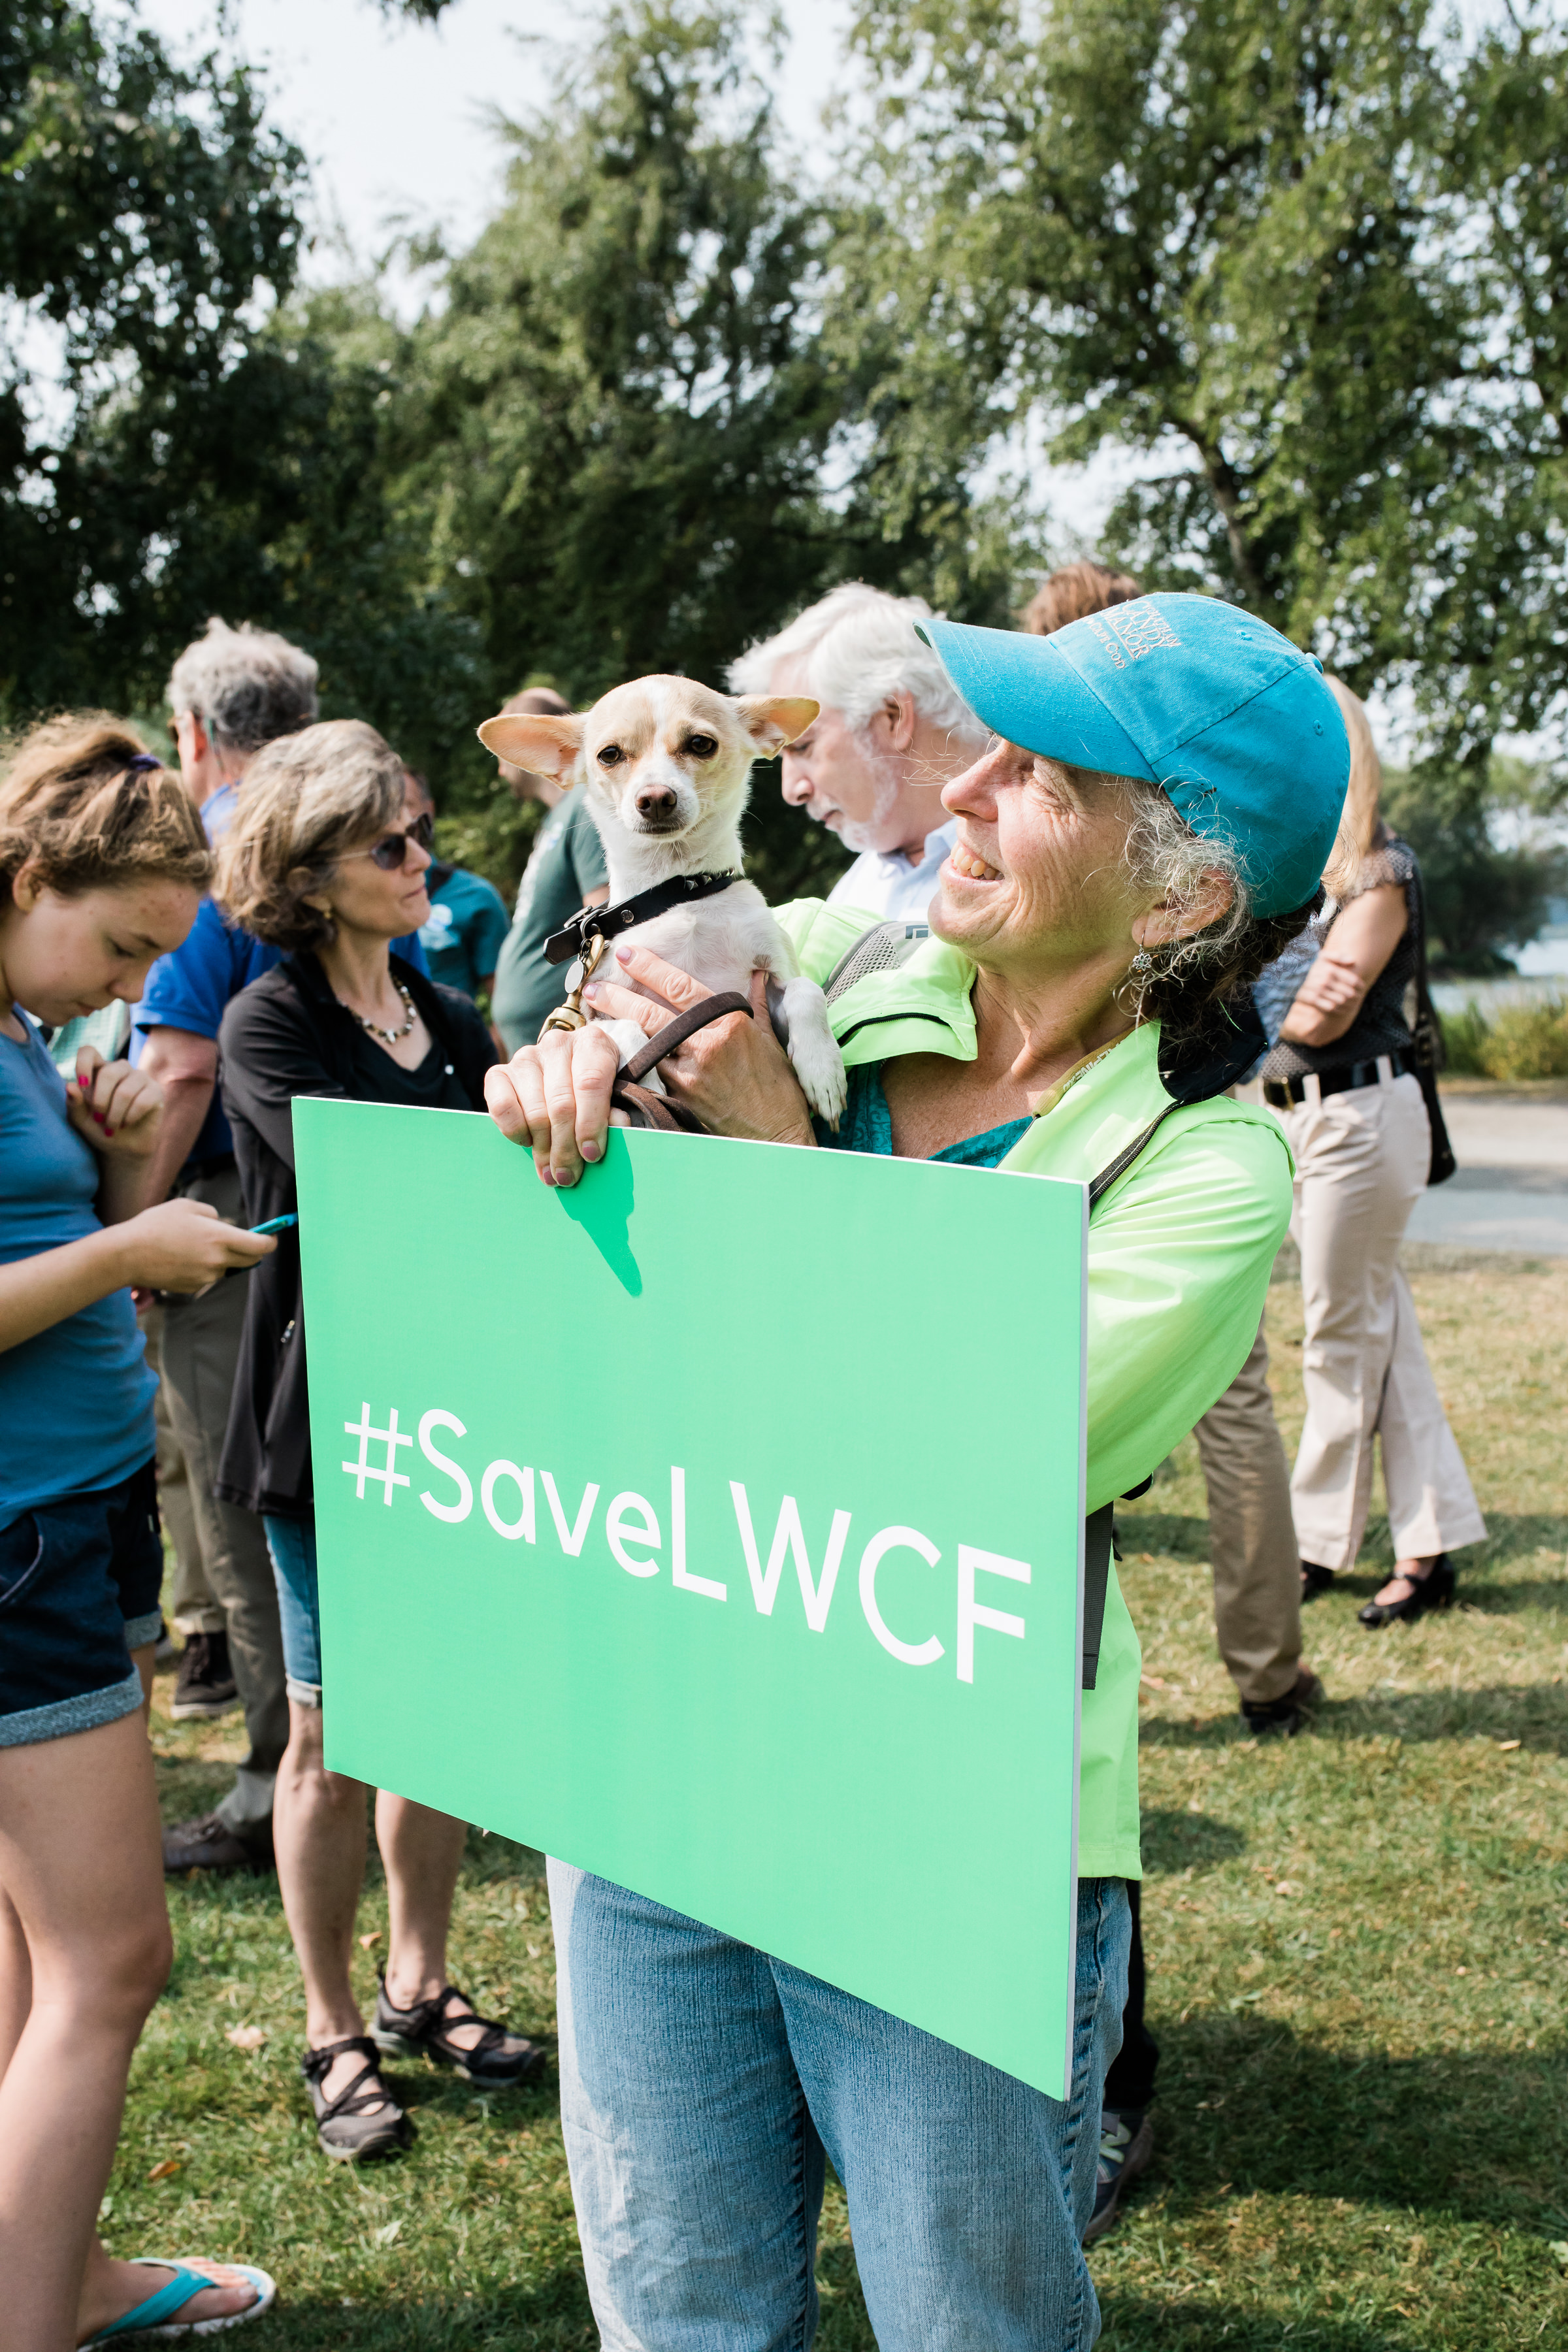 Our furry friends love LWCF – at least a dozen showed up with their people to raise their voices for public lands too. Photo by Stevie Rotella